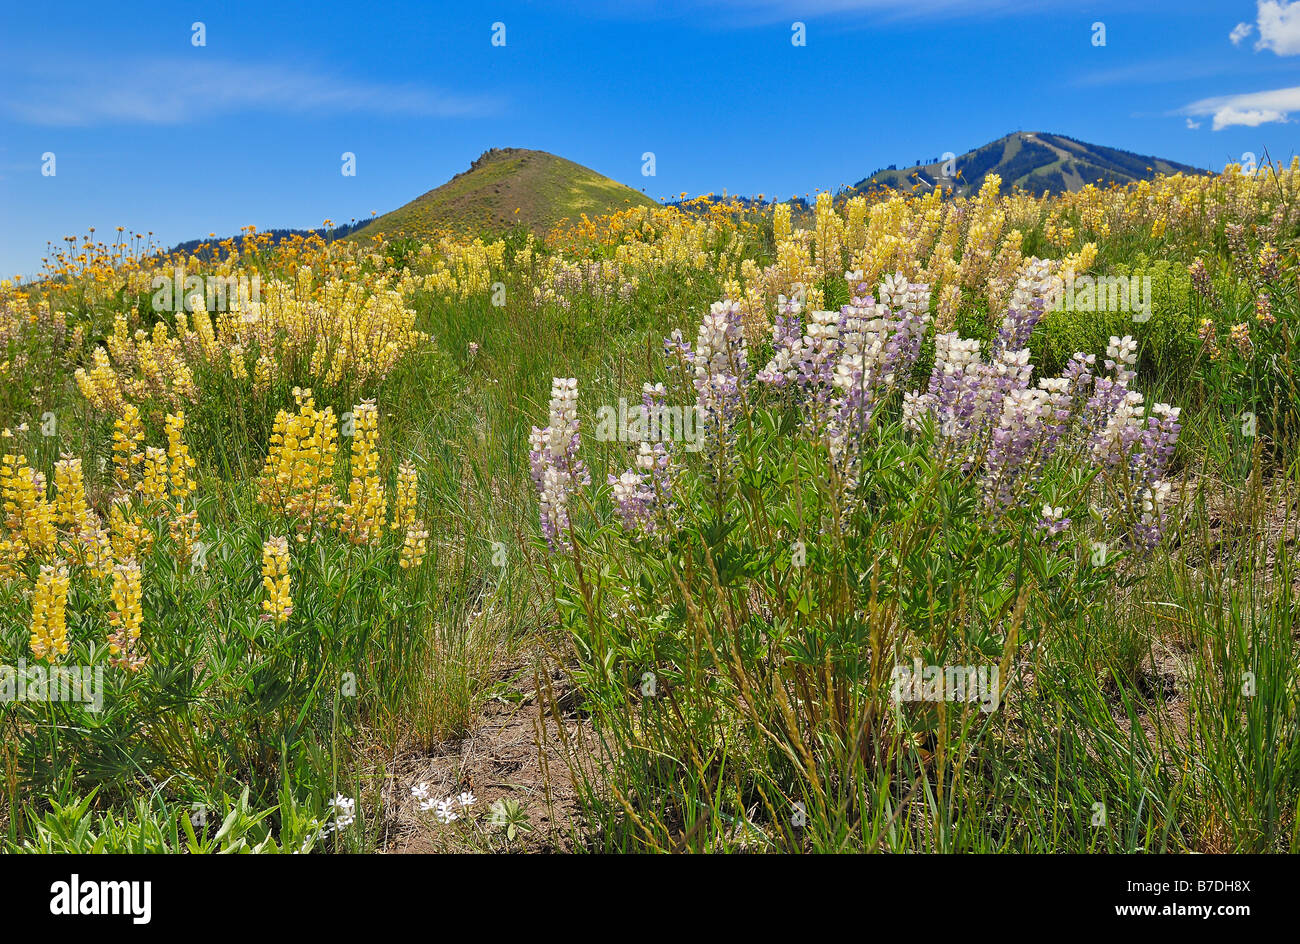 Hillside covered with wild flowers at the ski resort of Sun Valley in Idaho, United States of America - Stock Image